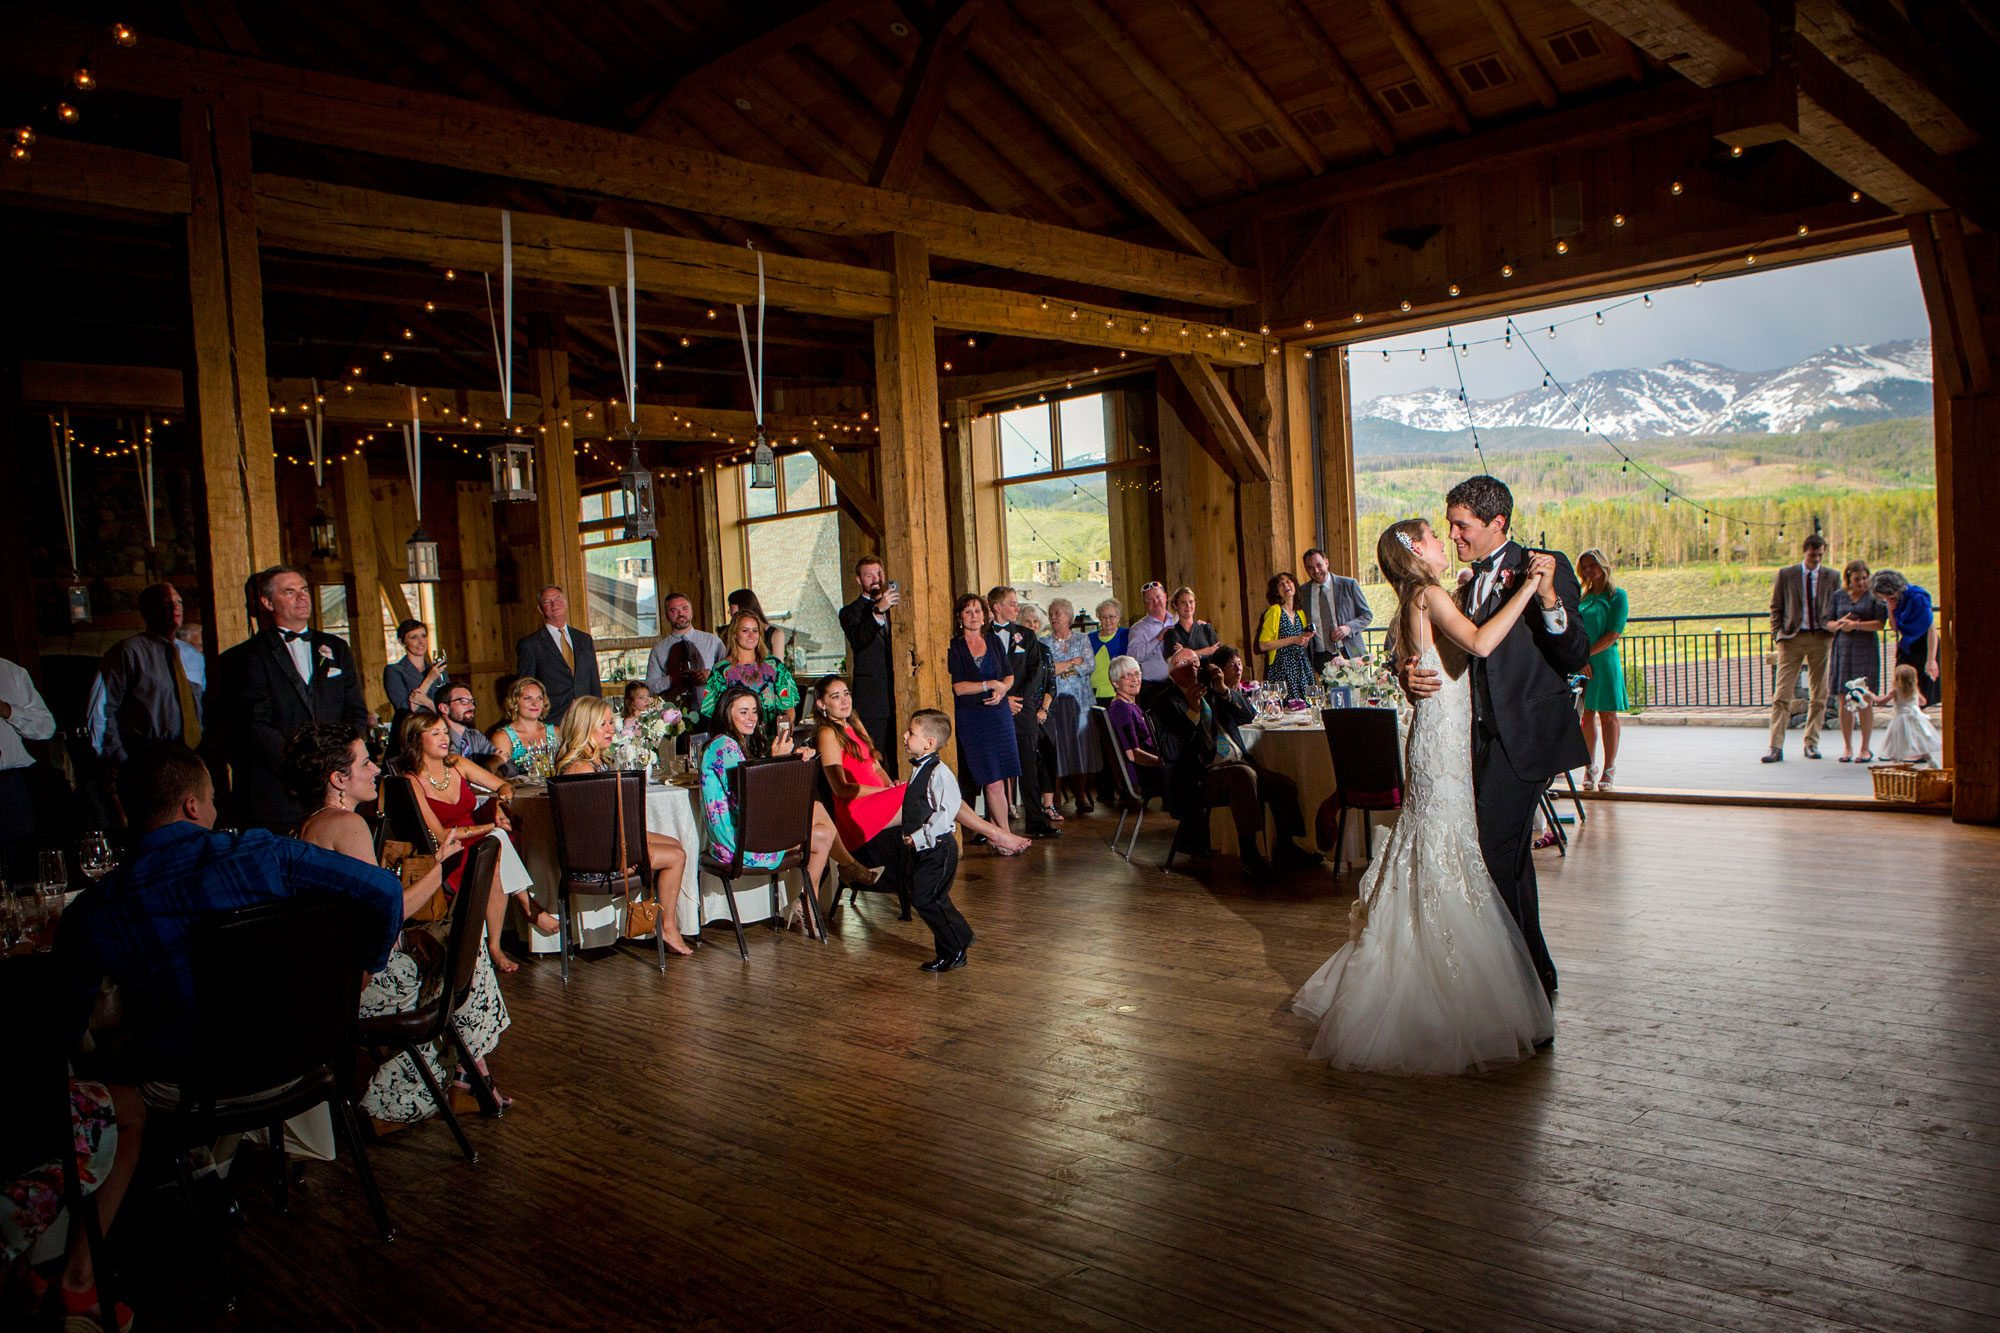 A Magical Colorado Ranch Wedding. Photographer: David Lynn Photography Event Planner & Design: JA Special Events |  Floral Designer: Statice Floral | Venue: Devil's Thumb Ranch